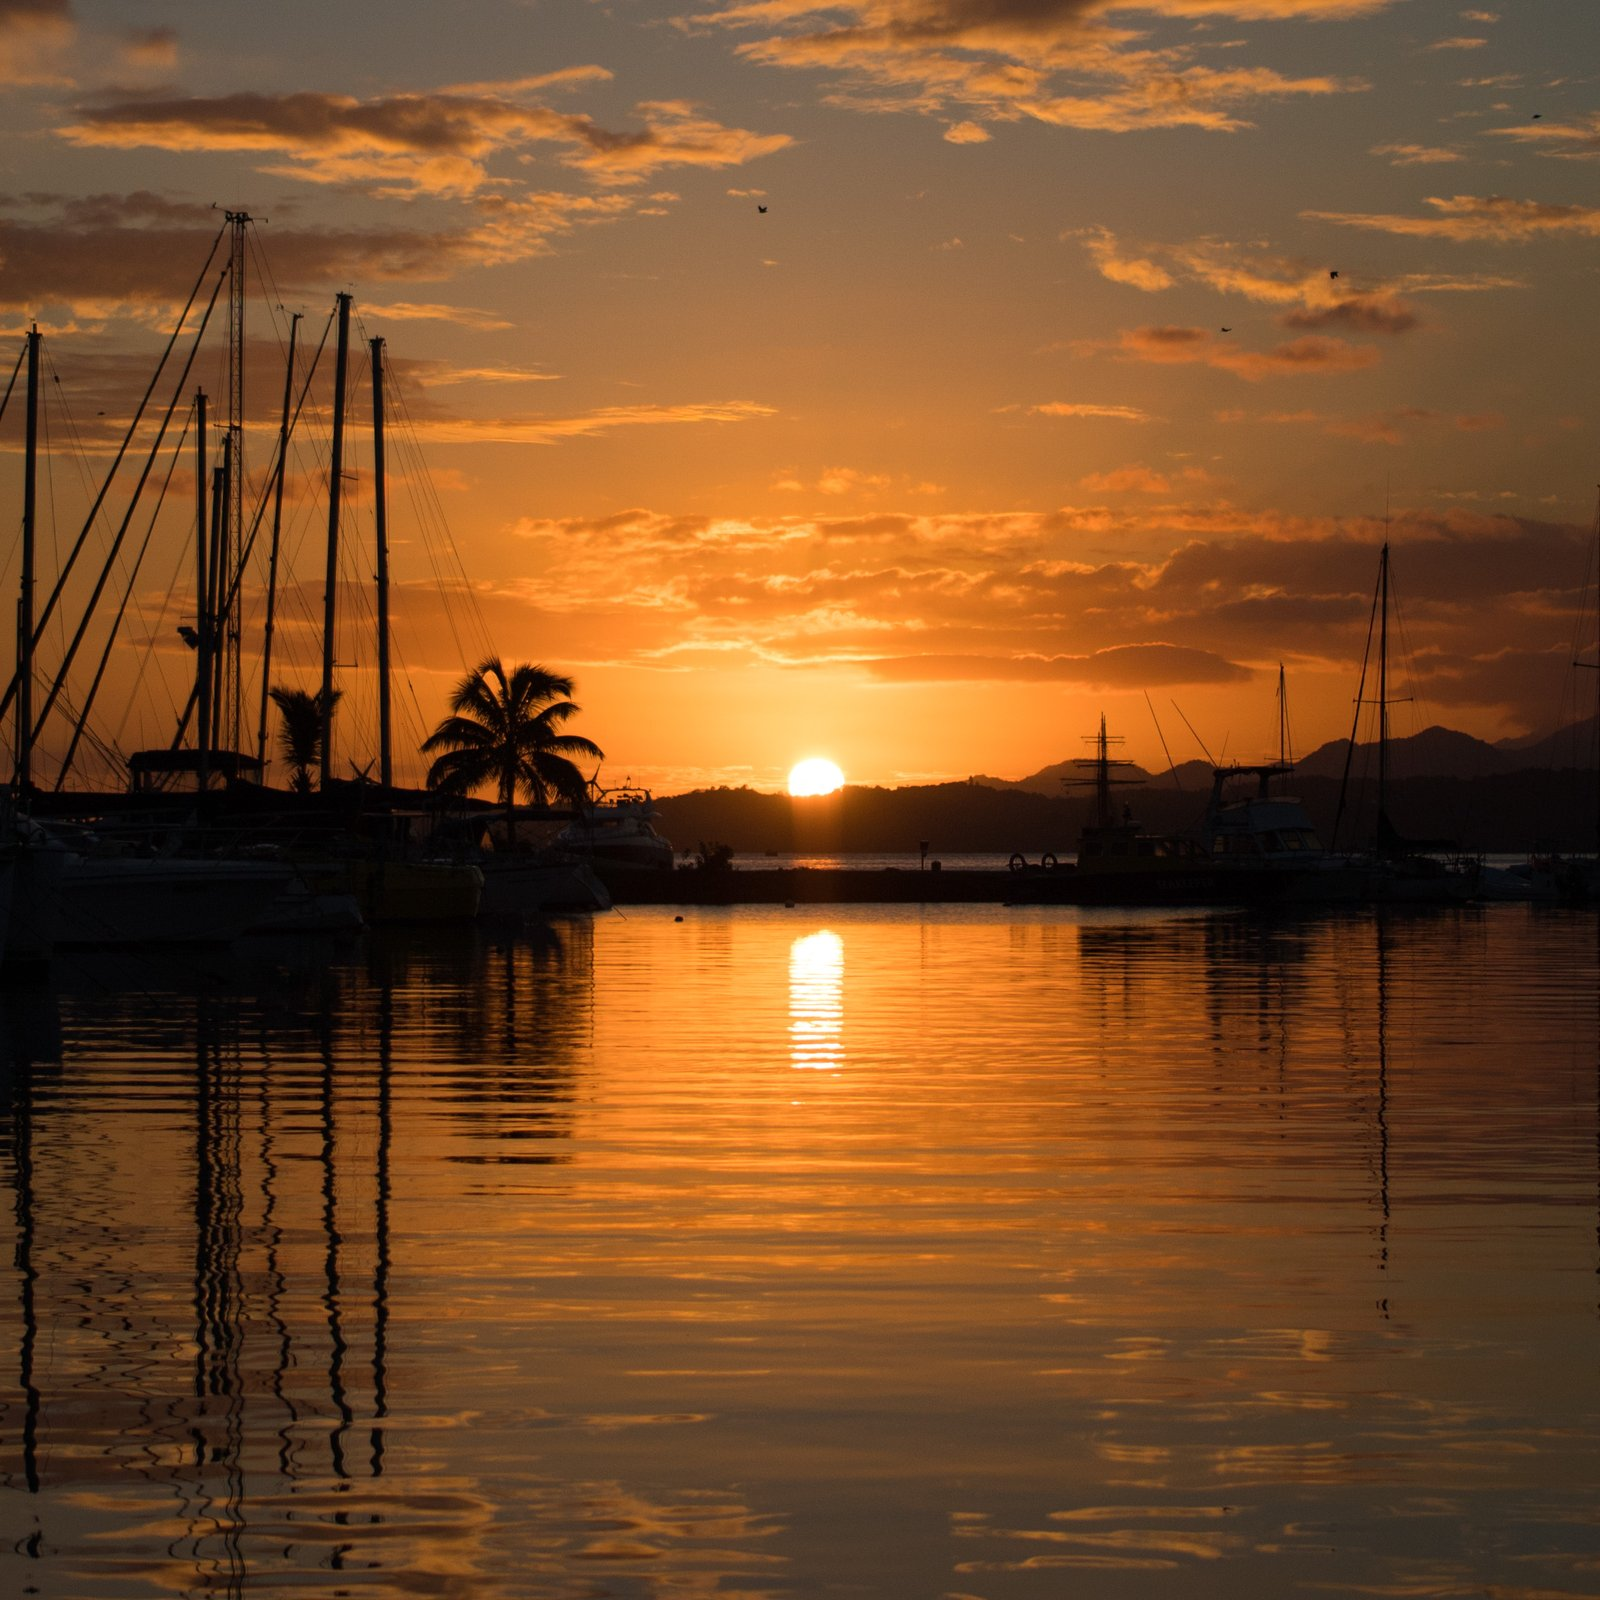 silhouette of boats on calm body of water during sunset